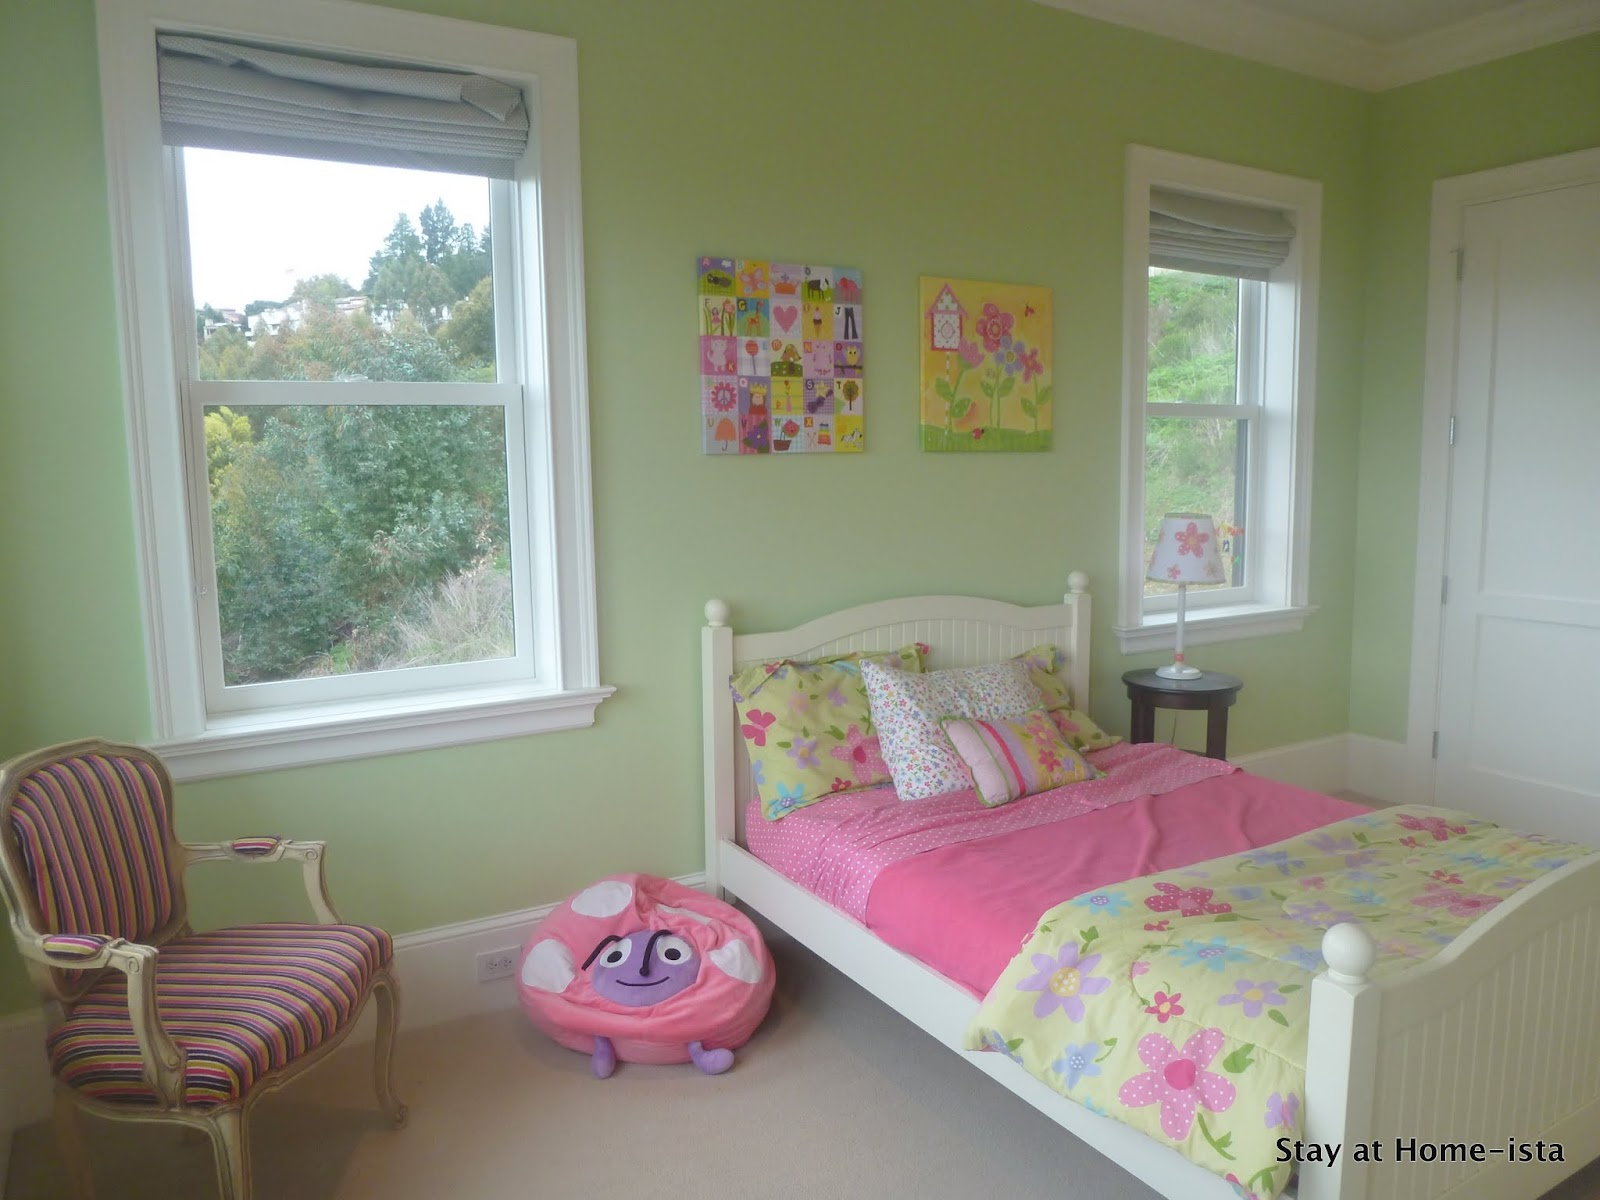 Stay at home ista little girl 39 s butterfly bedroom for Bedroom paint ideas green